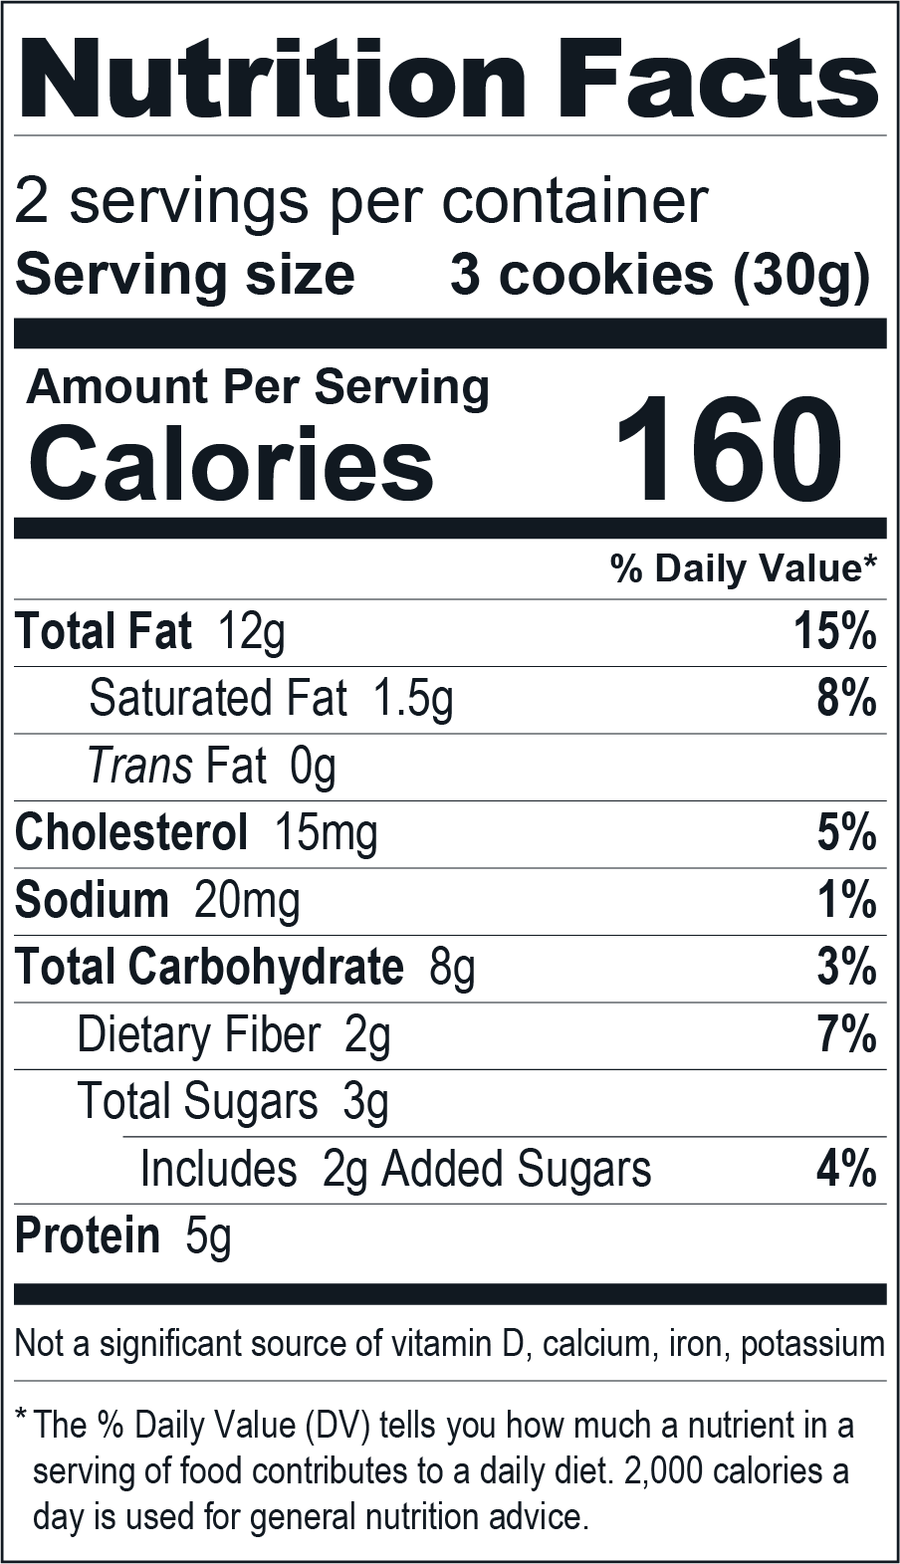 Keto-Snaps Cinnilla 2-serving tin. Gluten-free Keto cookies nutrition label.